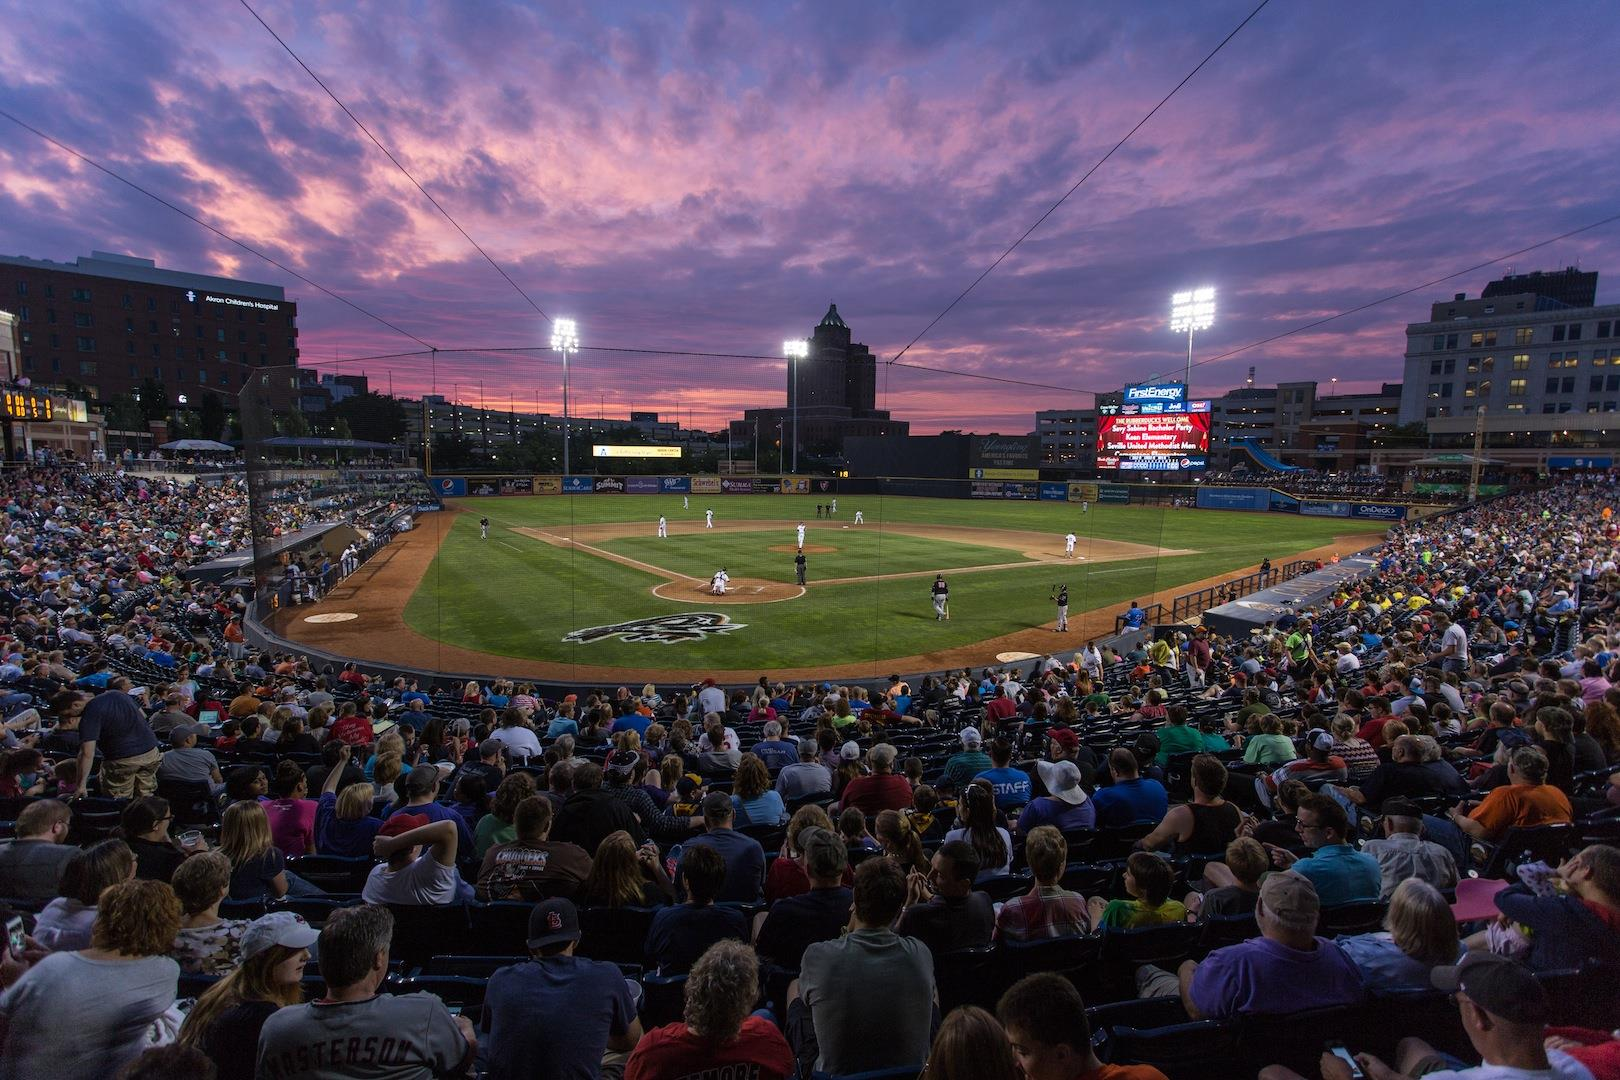 Greater Akron is a Heavy Hitter in the World of Sports